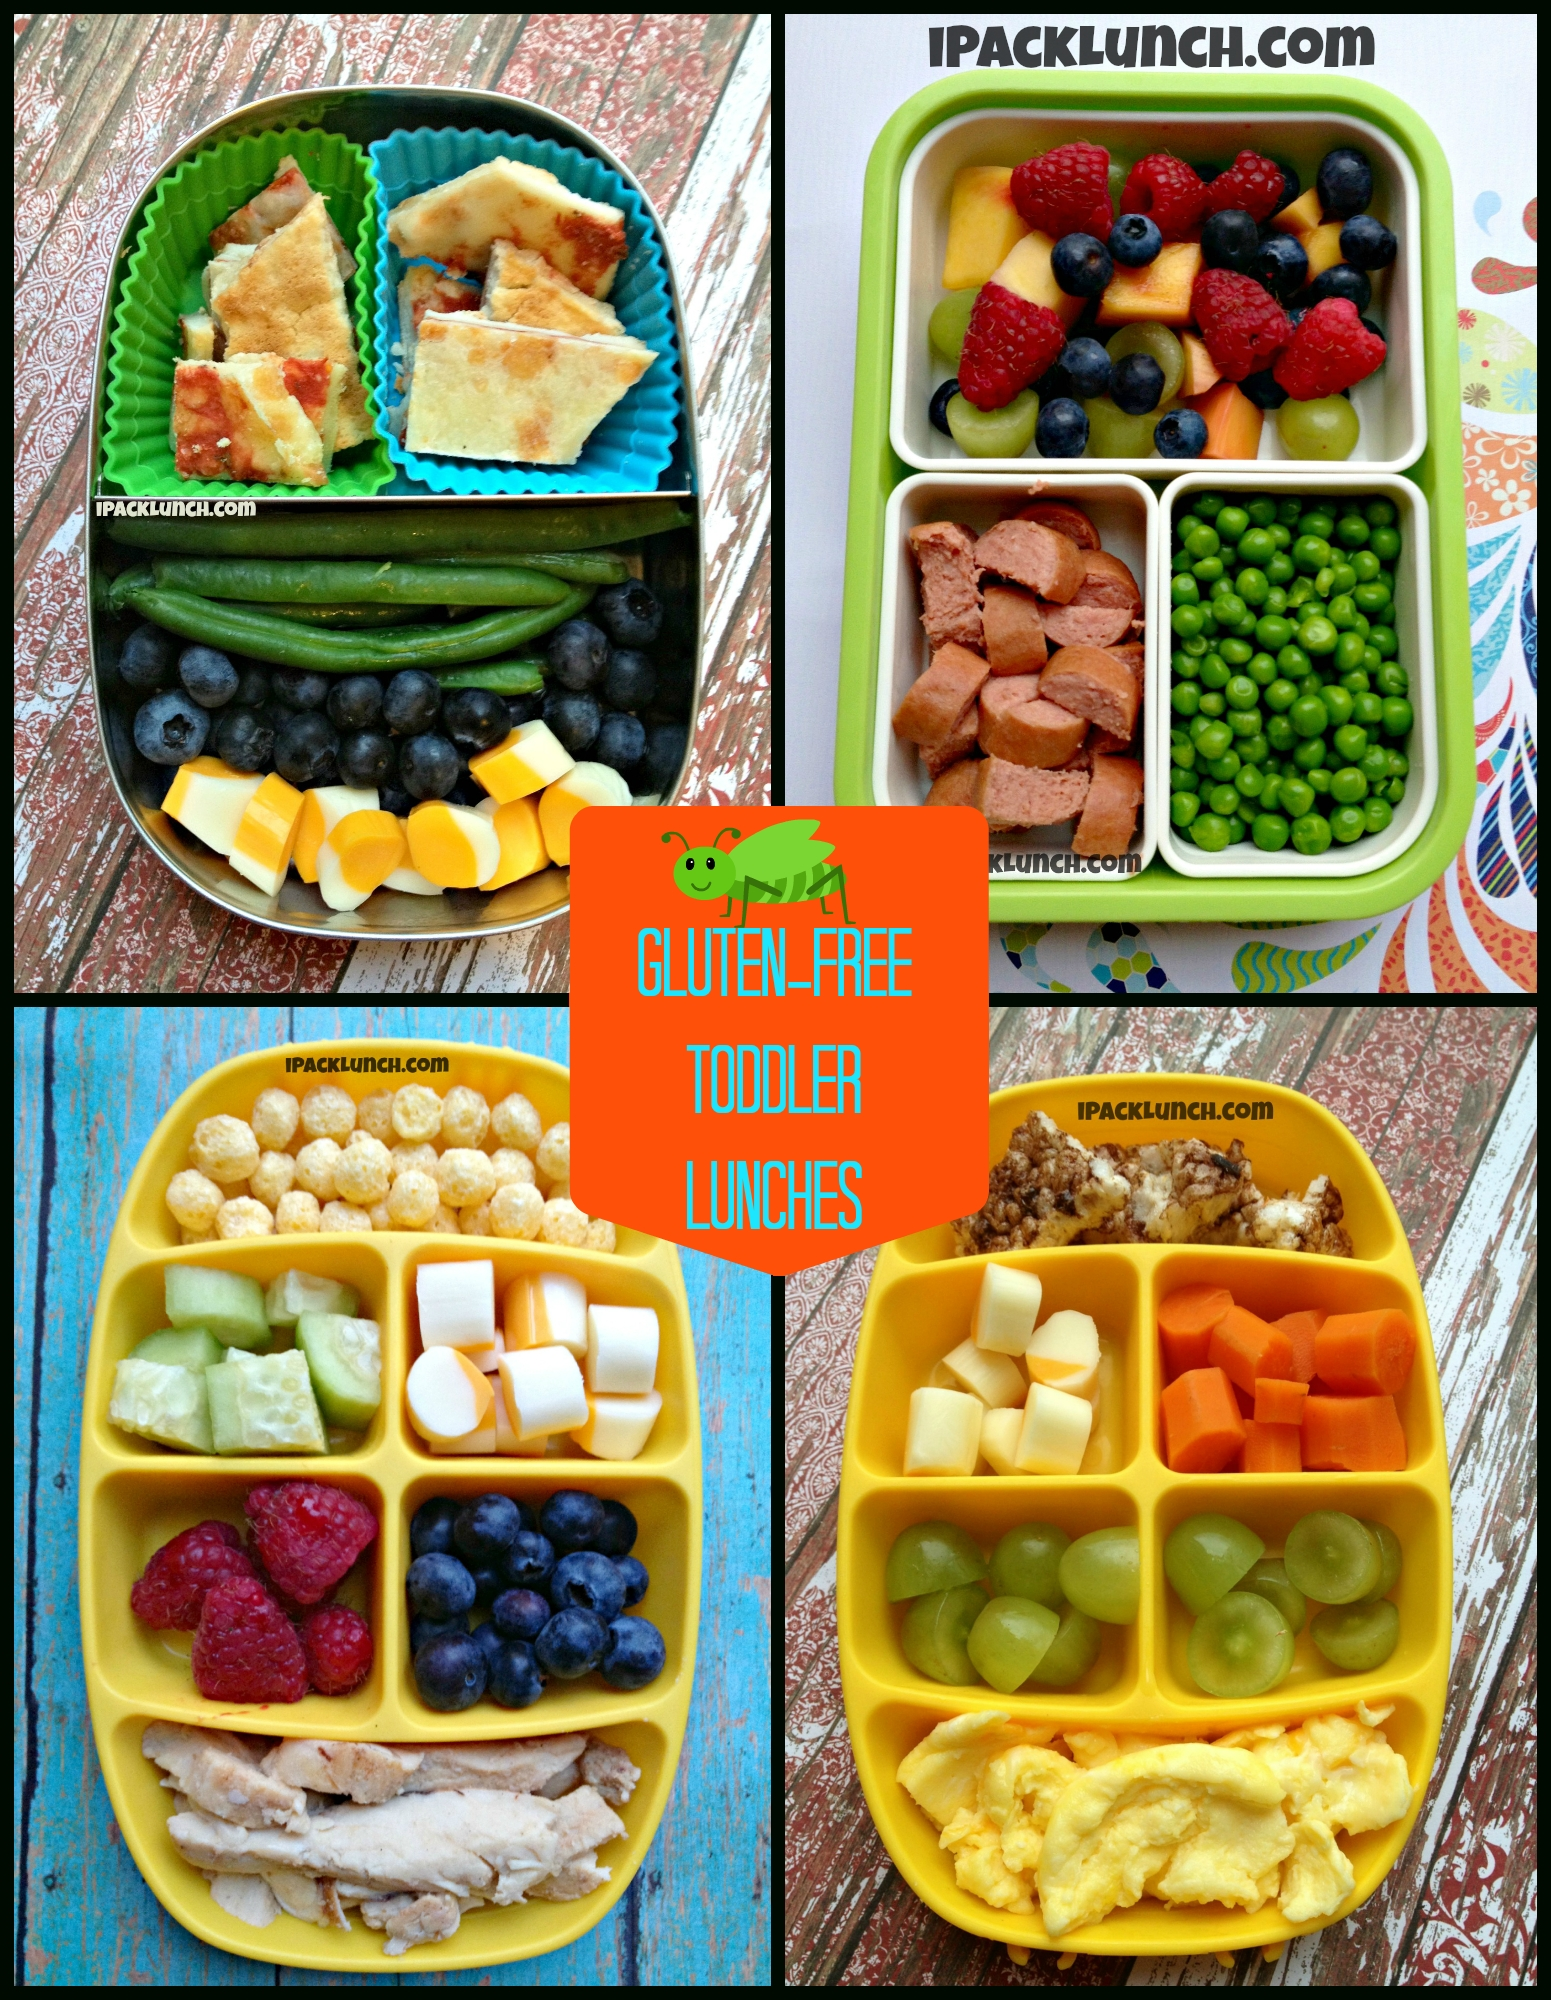 10 Pretty Gluten Free Lunch Ideas For Kids ipacklunch a blog archive a gluten free friday 3 8 13 appetizer